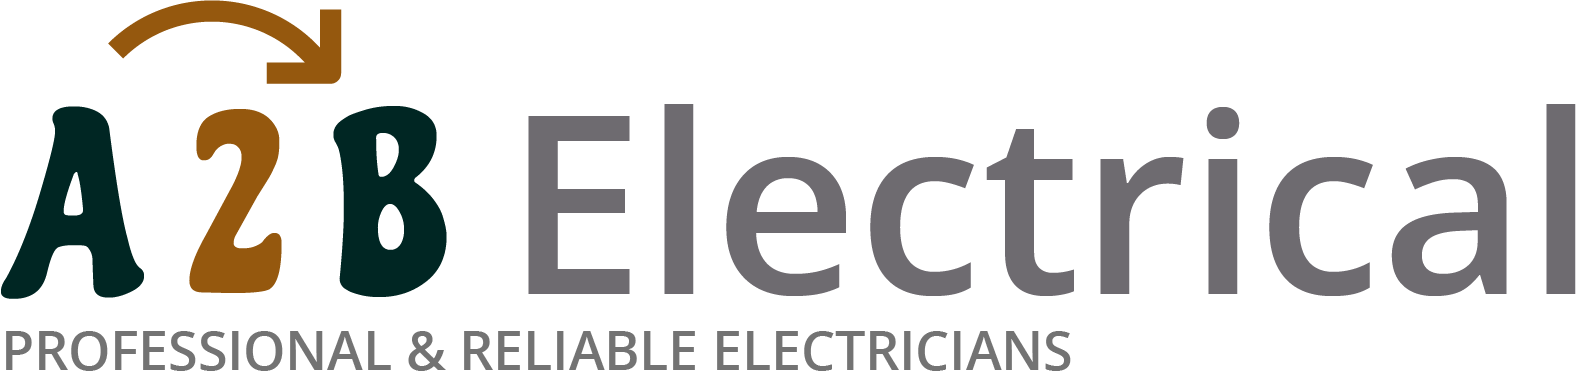 If you have electrical wiring problems in Somers Town, we can provide an electrician to have a look for you.